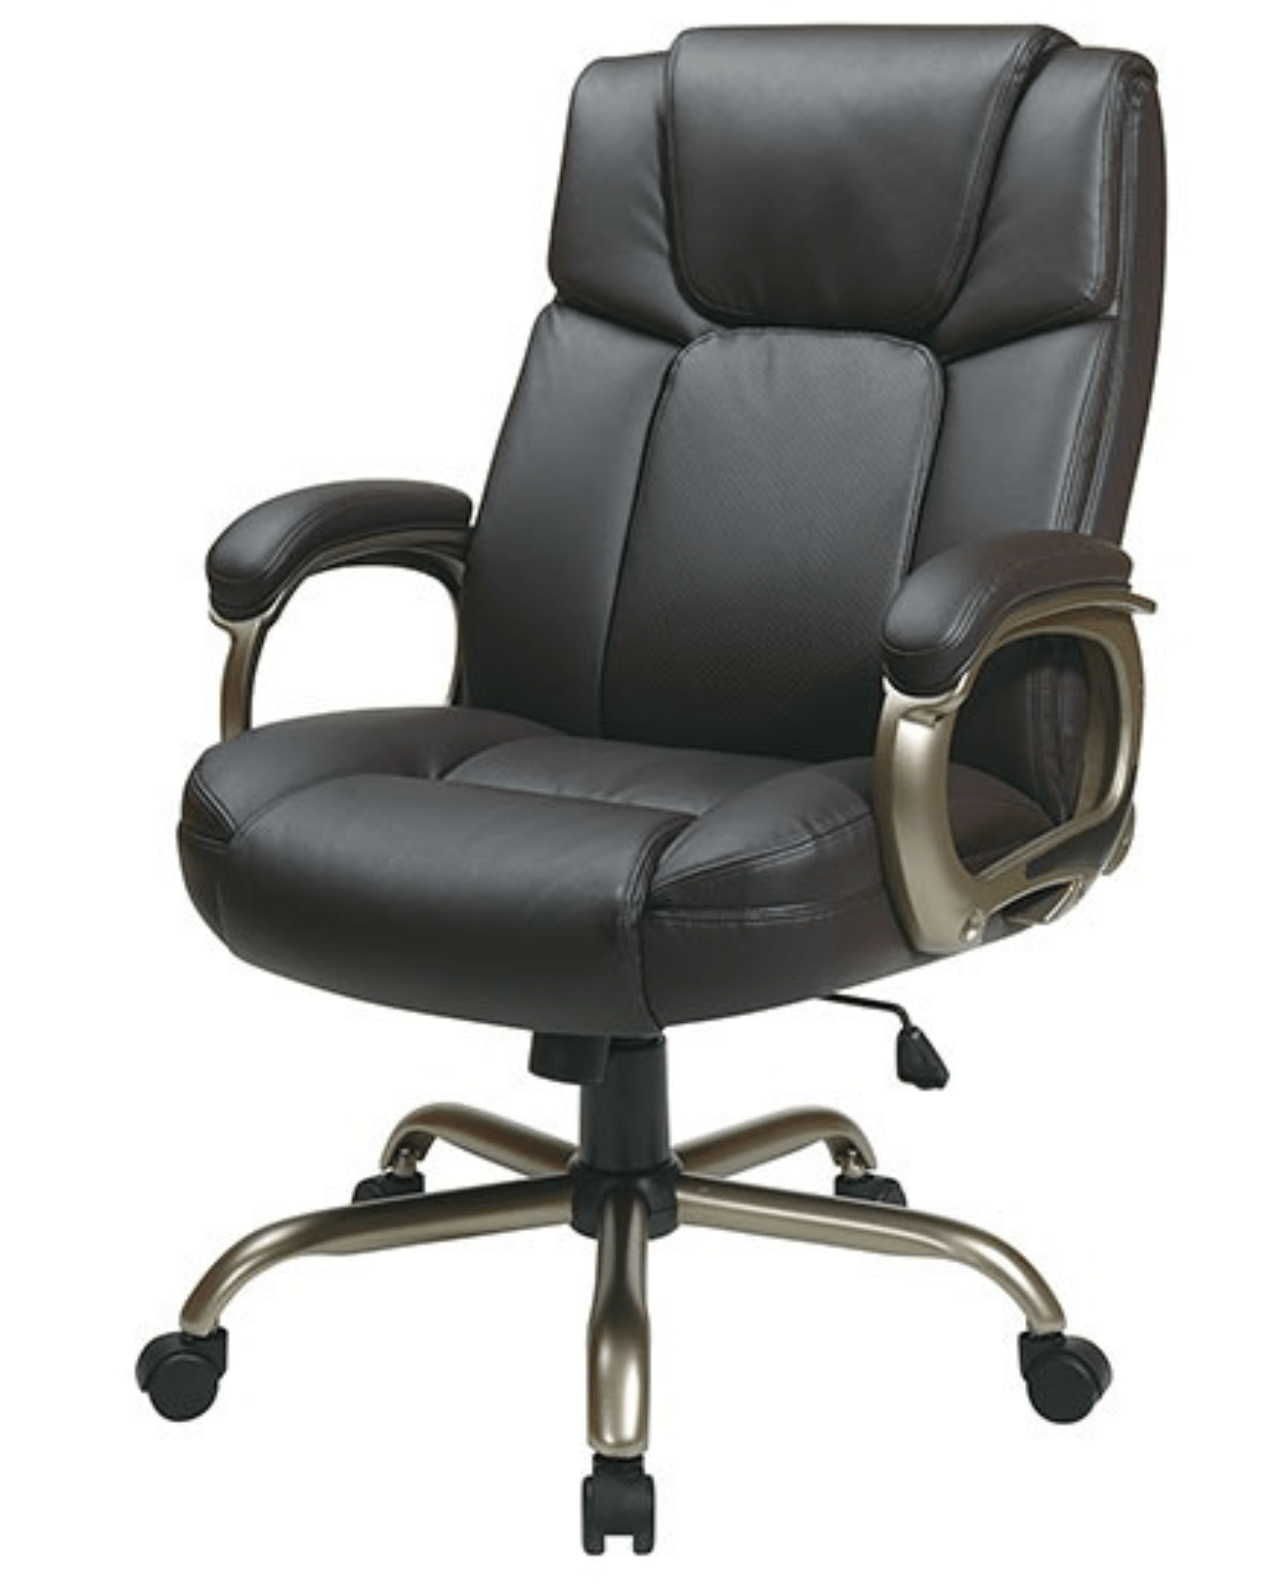 ergonomic chair bd antique sewing with drawer executive big mans espresso eco leather seat